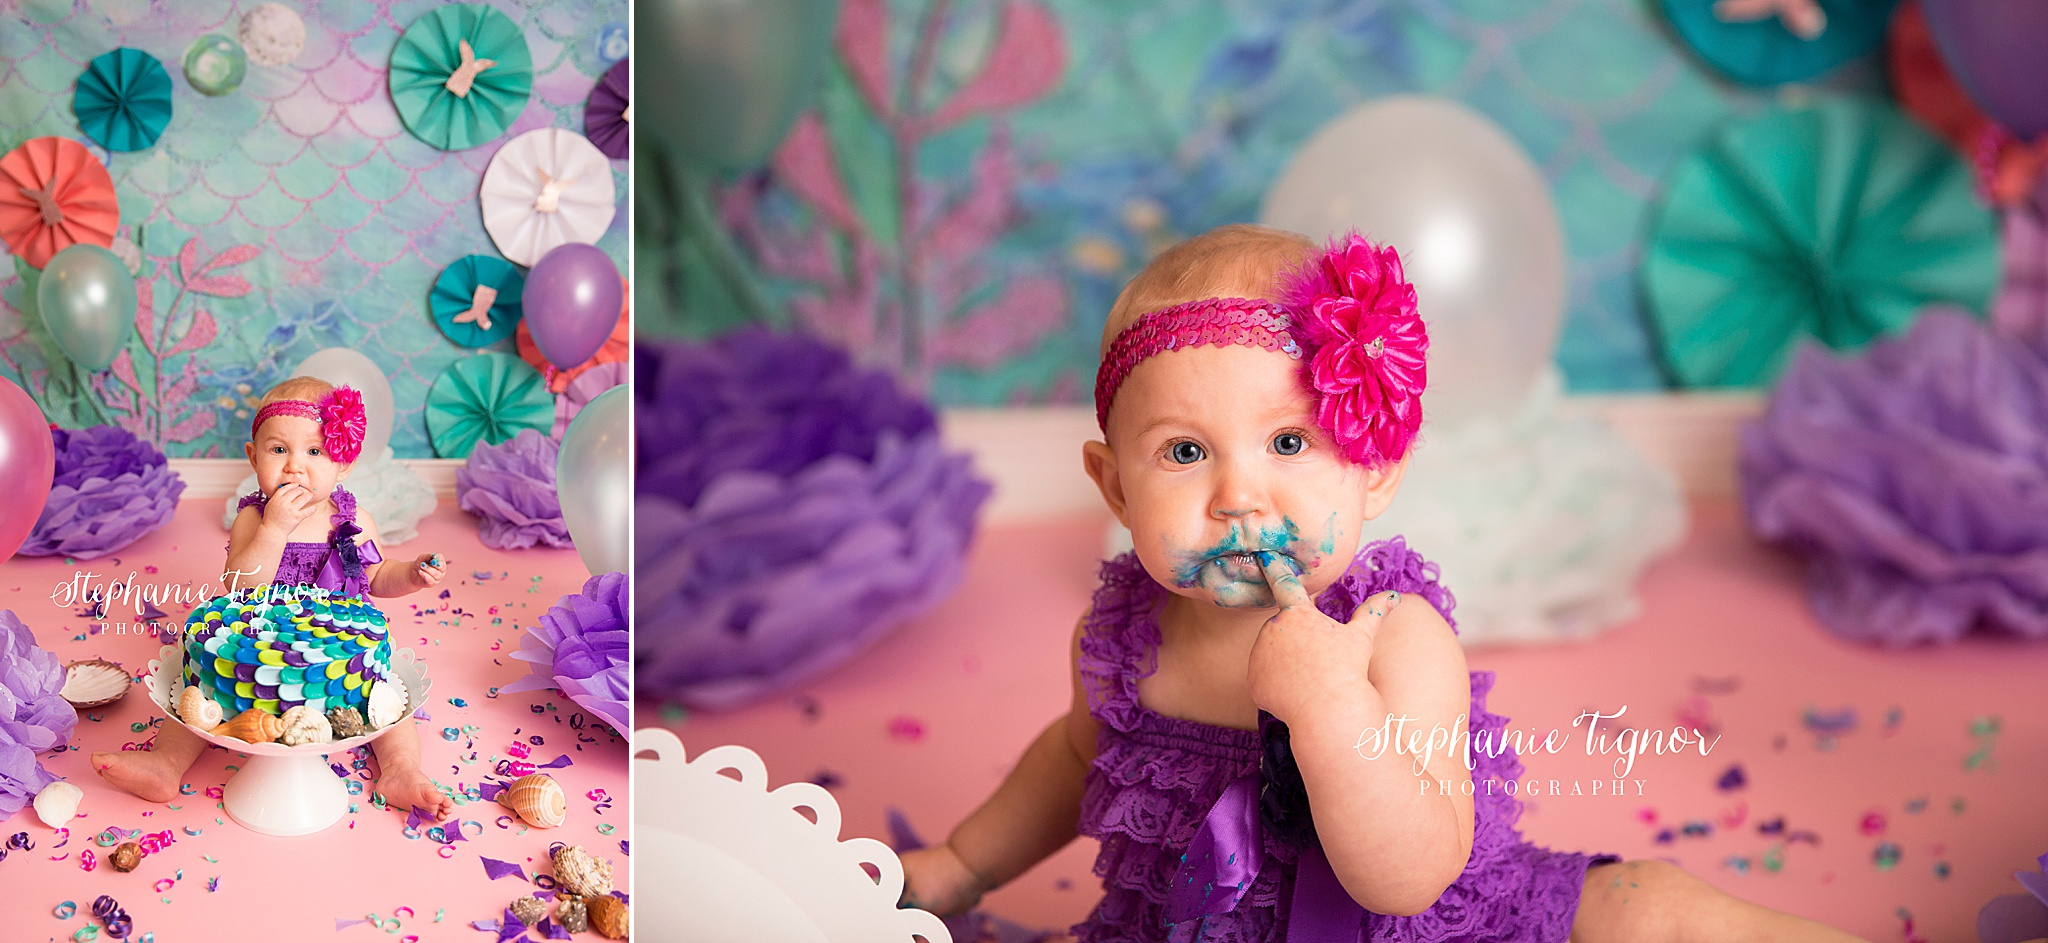 Stephanie Tignor Photography_Cake Smash_0087.jpg